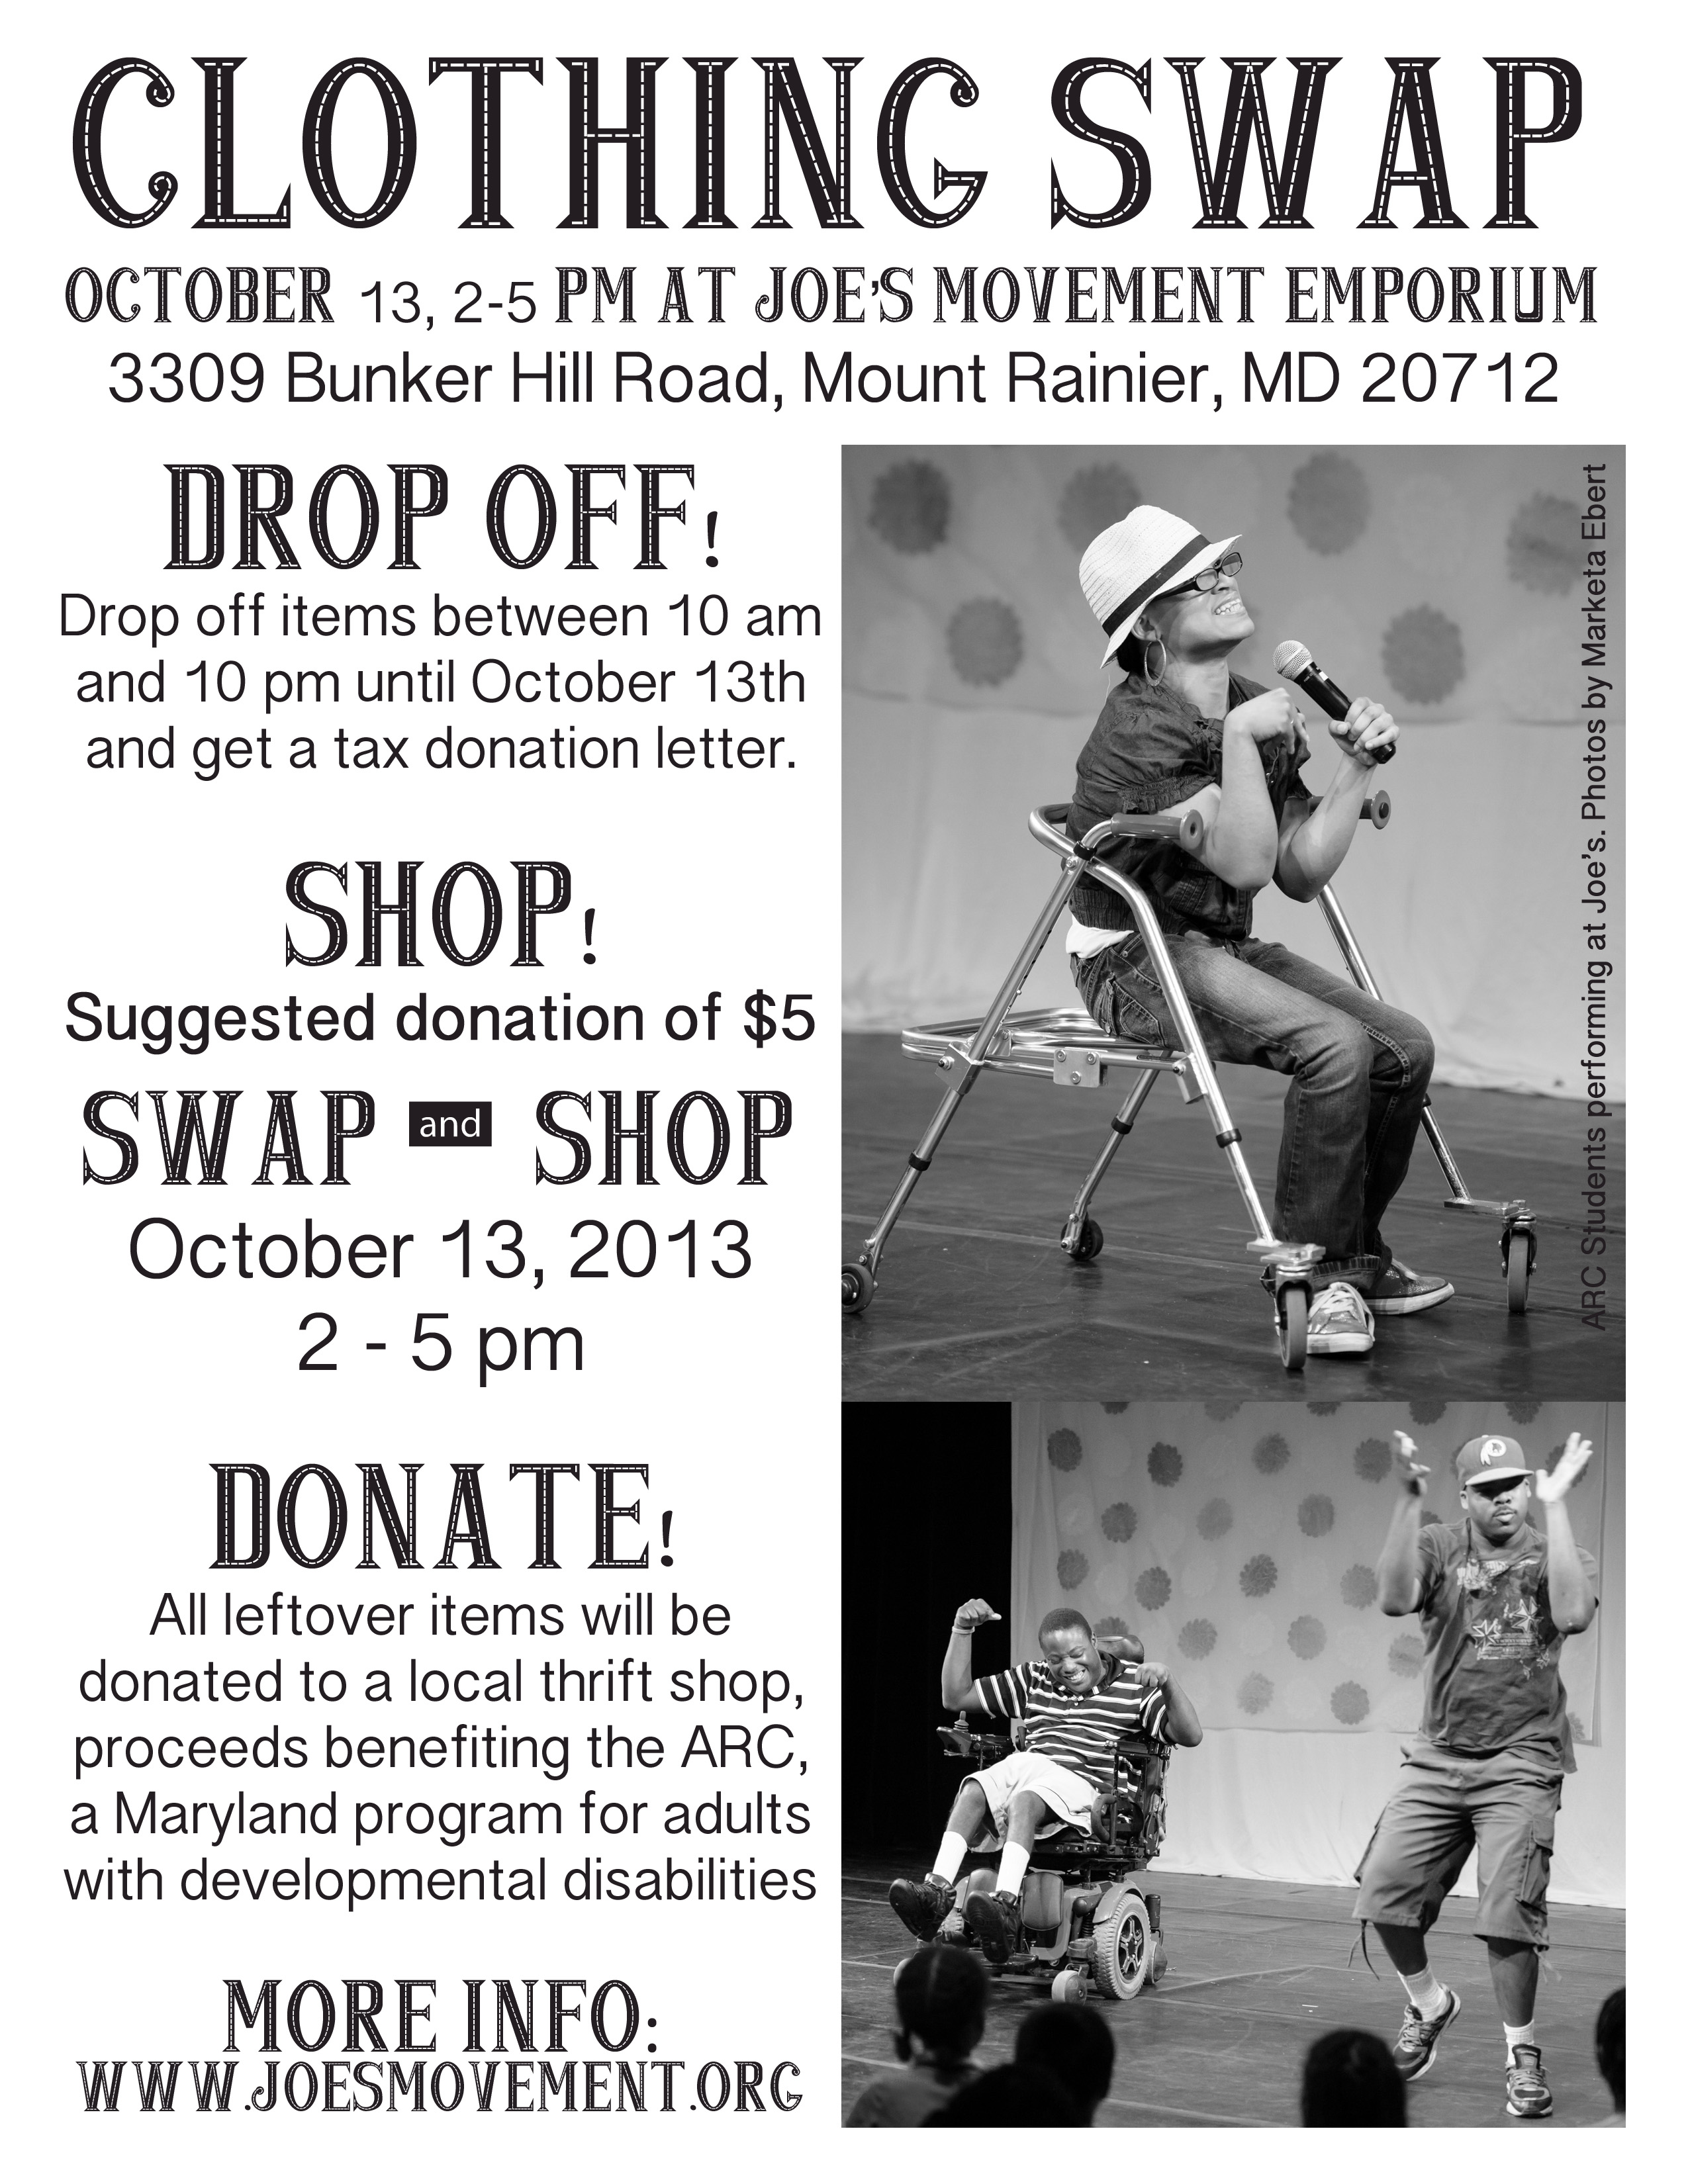 Clothing Swap Recycle Reuse And Reduce